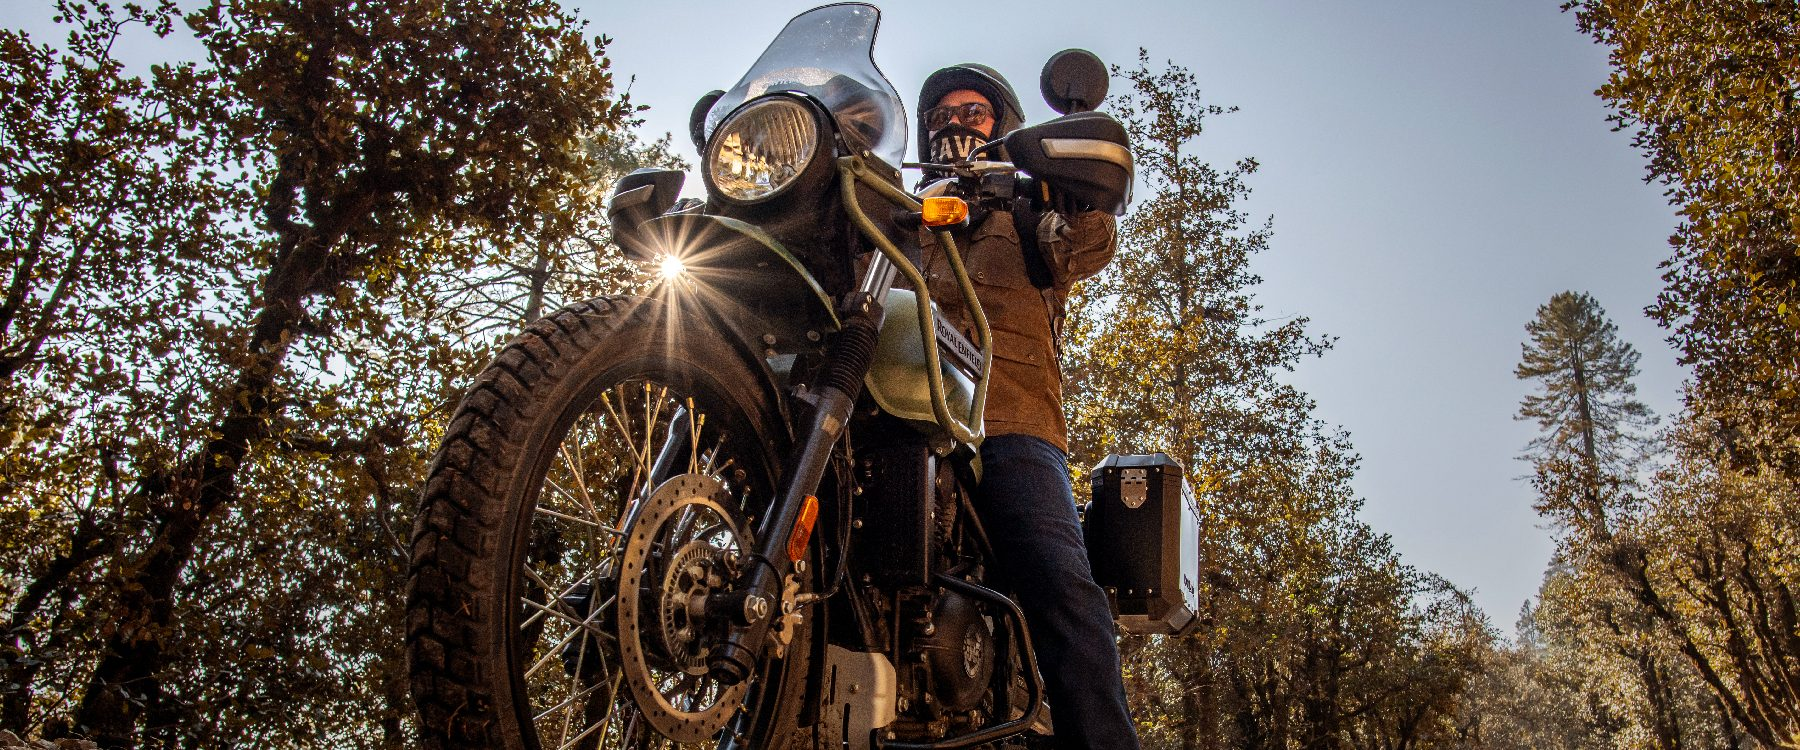 Royal Enfield Himalayan: Rugged, all-terrain adventure bike with a stripped-back design